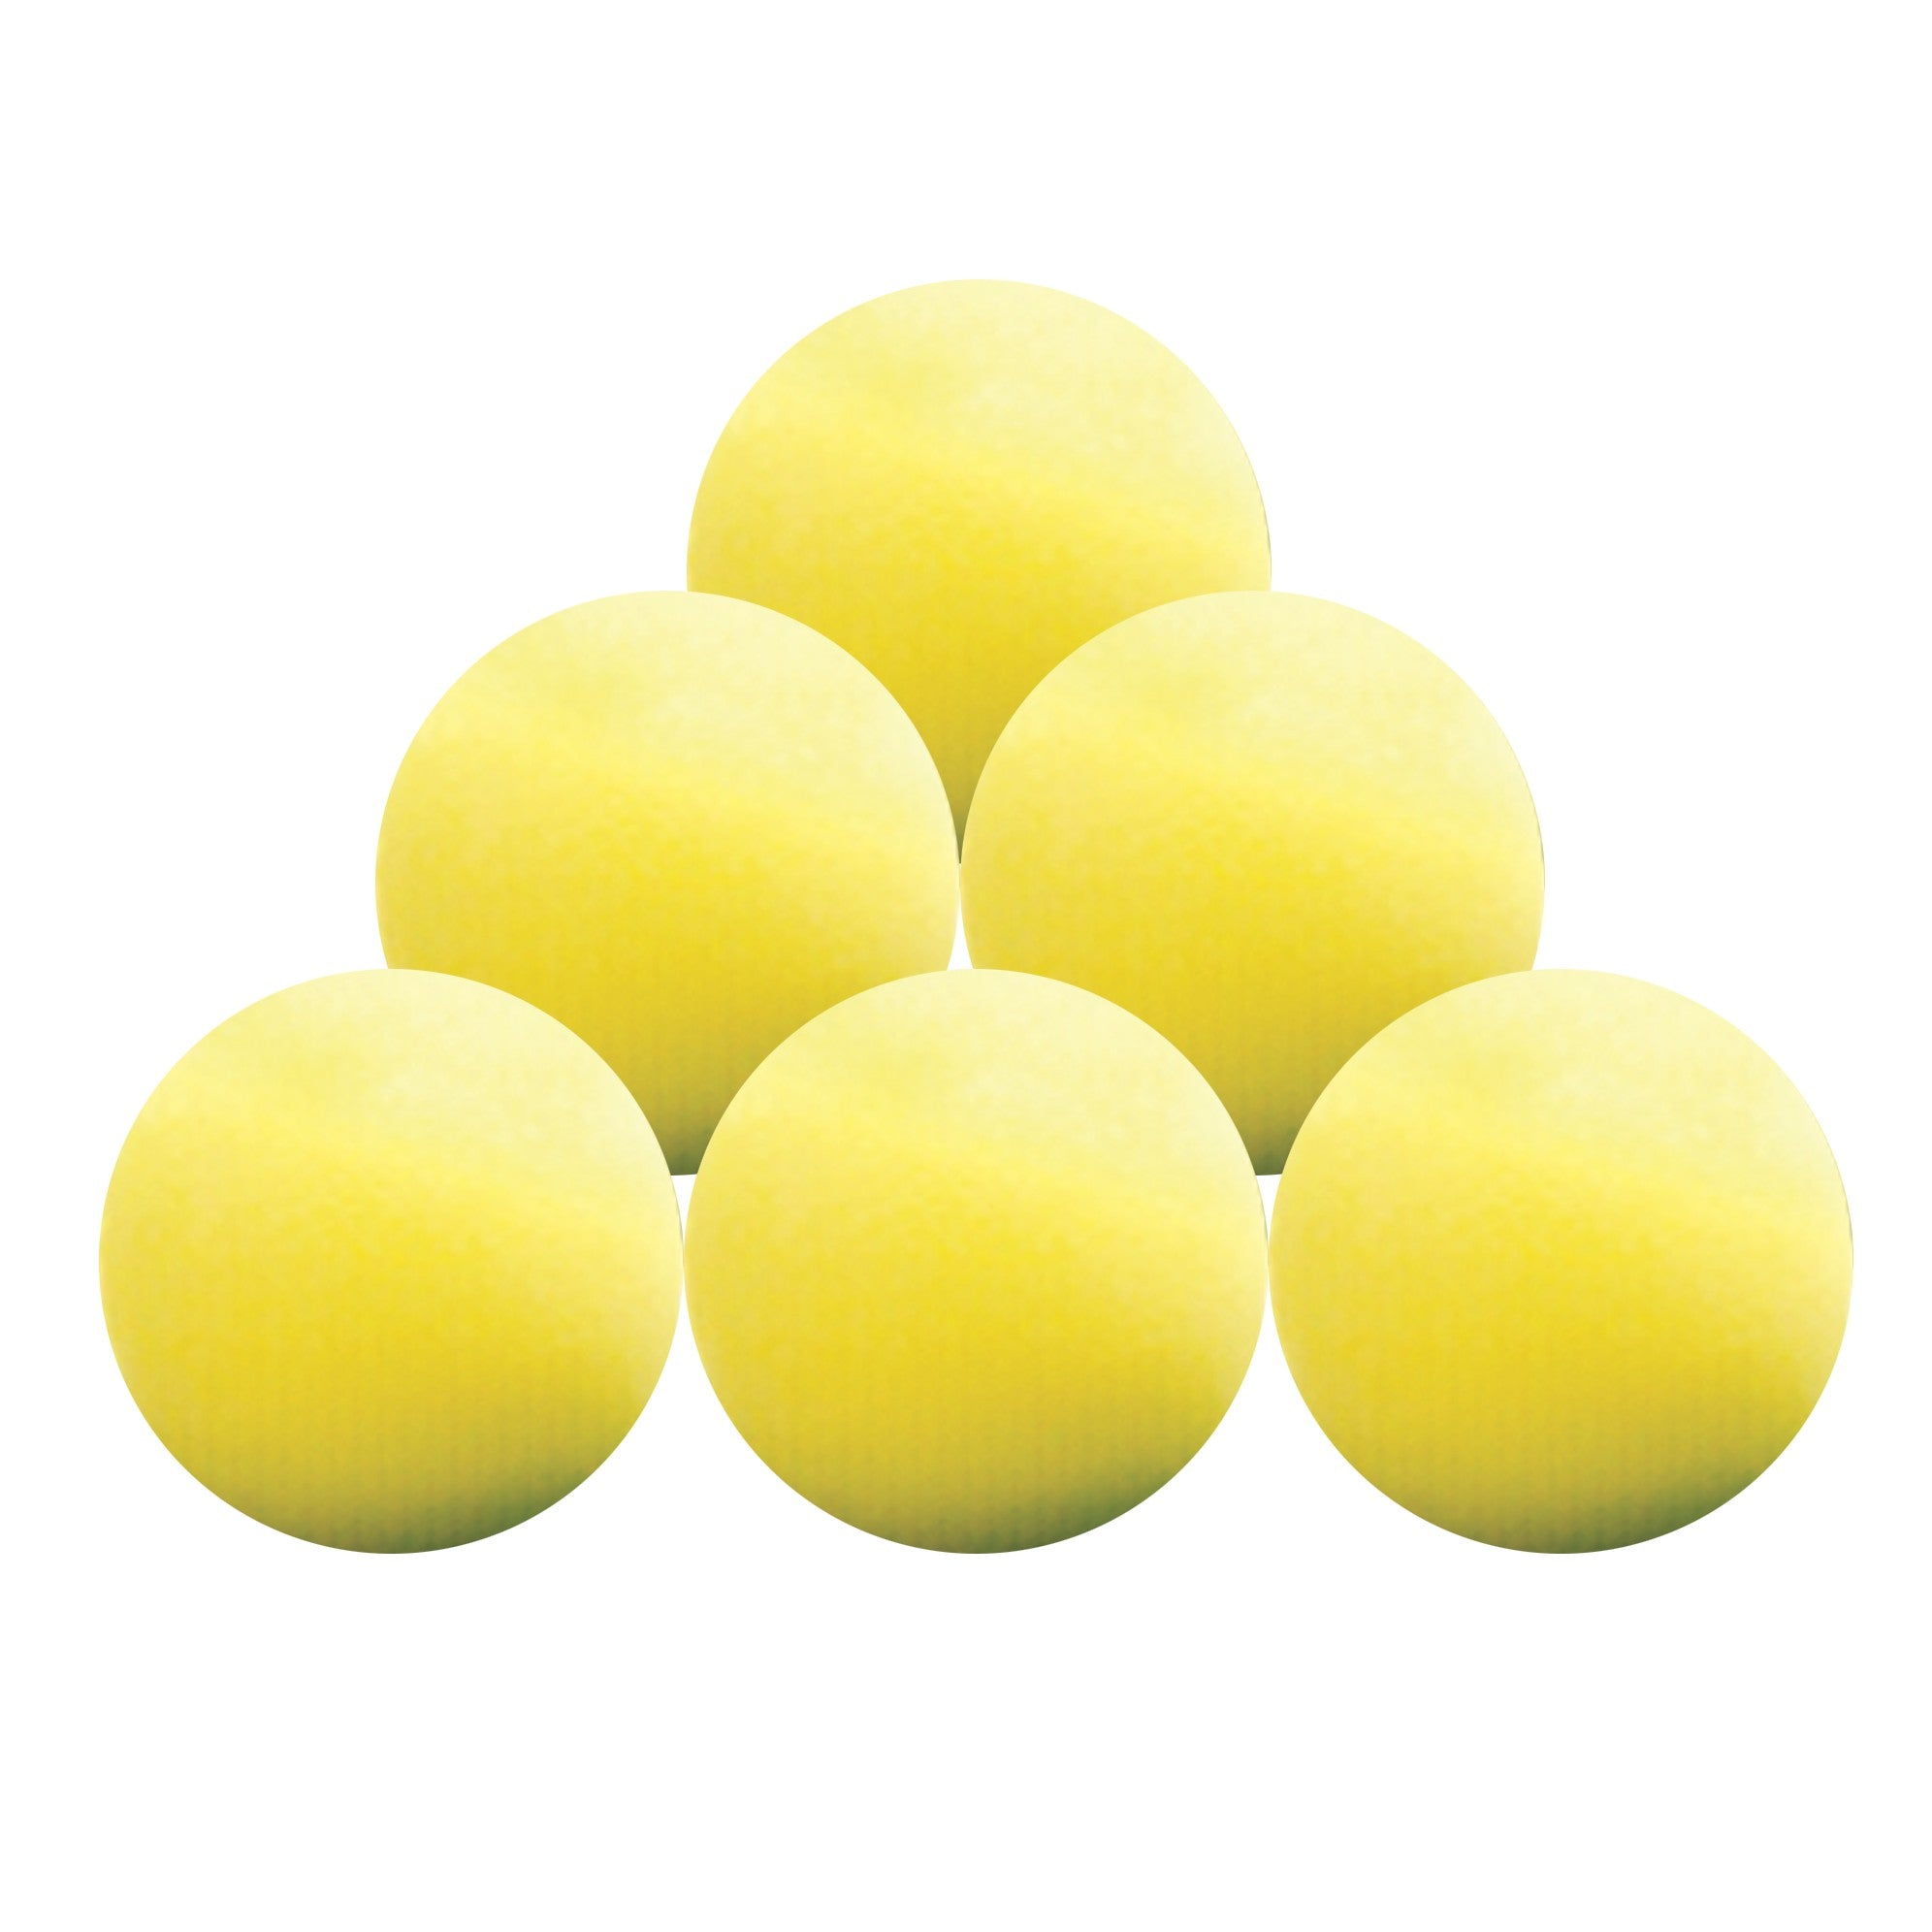 Practice Foam Balls (Pack of 6) - Event Stuff Ltd Owns Putterfingers.com!